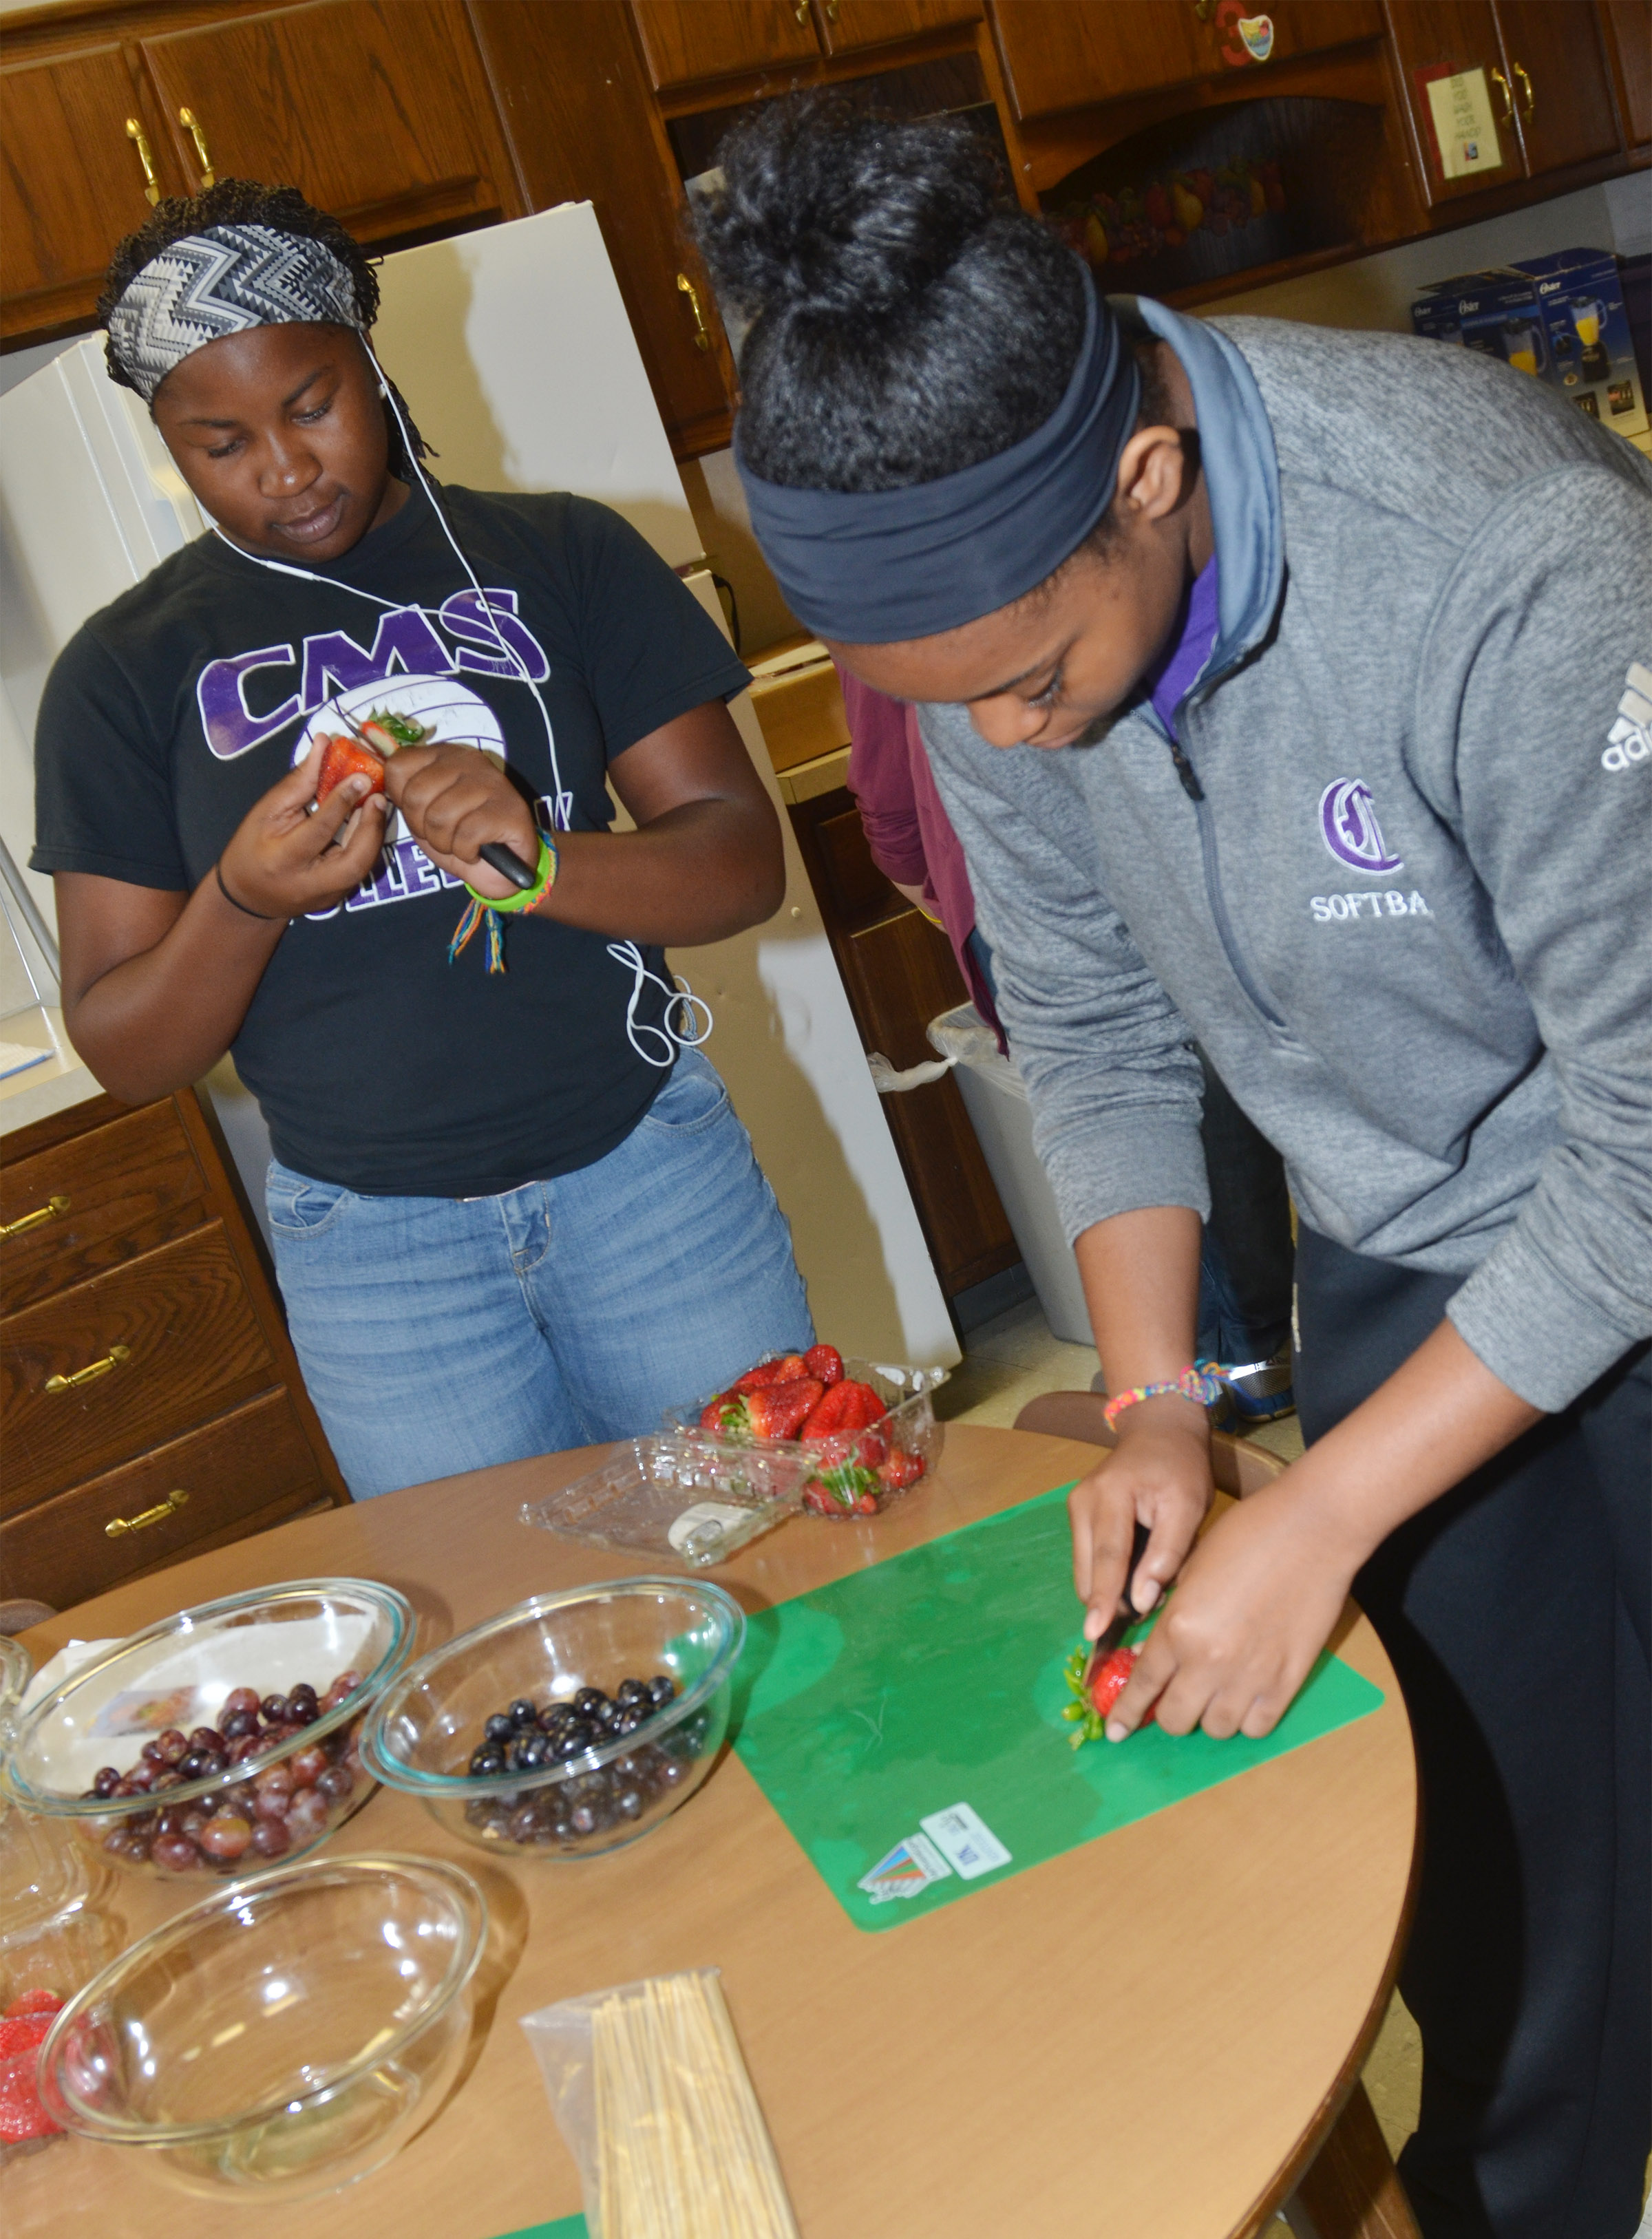 CHS juniors Kiyah Barnett, at left, and Vonnea Smith prepare fruit for the fruit arrangement they will make with their classmates.